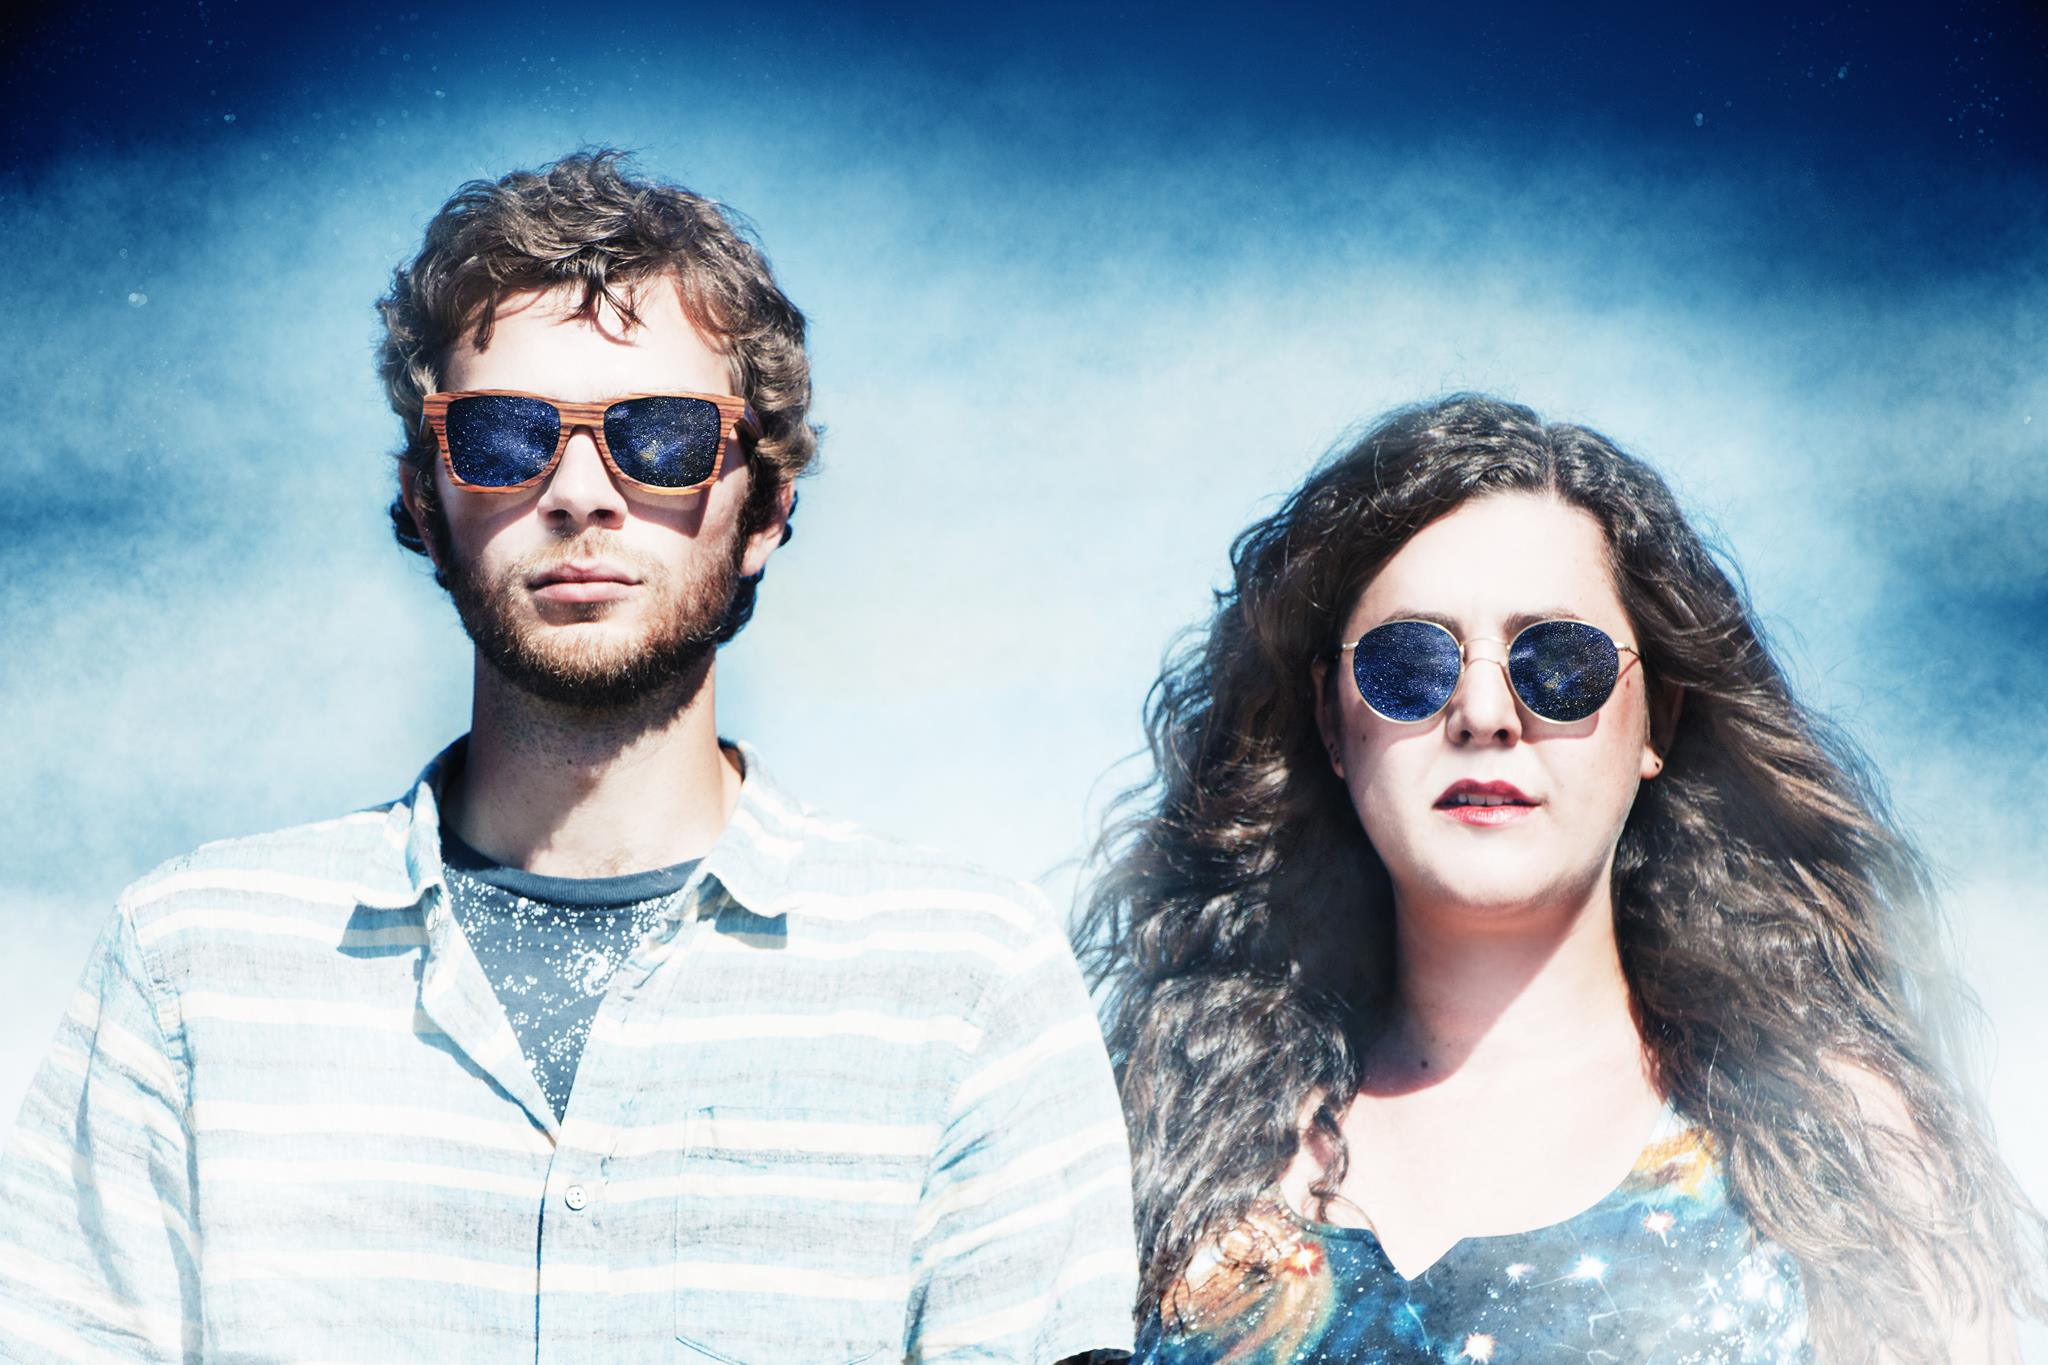 Berkeley-based group Bows talk forthcoming debut LP 'The Days We Left'